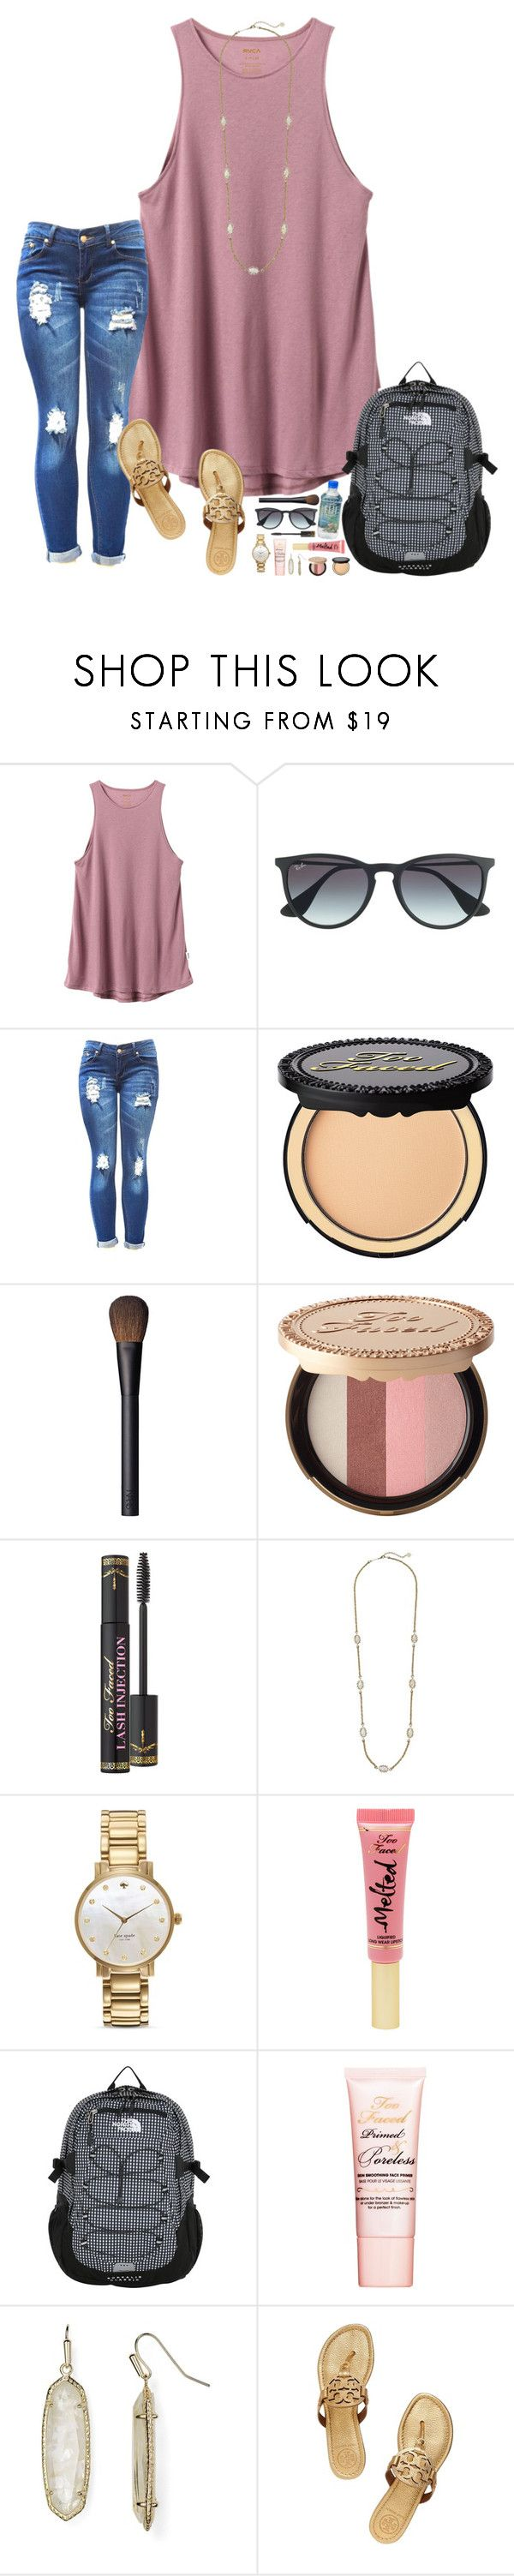 Tomorrow is Friday!! by hopemarlee ❤ liked on Polyvore featuring RVCA, Ray-Ban, Too Faced Cosmetics, NARS Cosmetics, Kendra Scott, Kate Spade, The North Face, Tory Burch and hmsloves